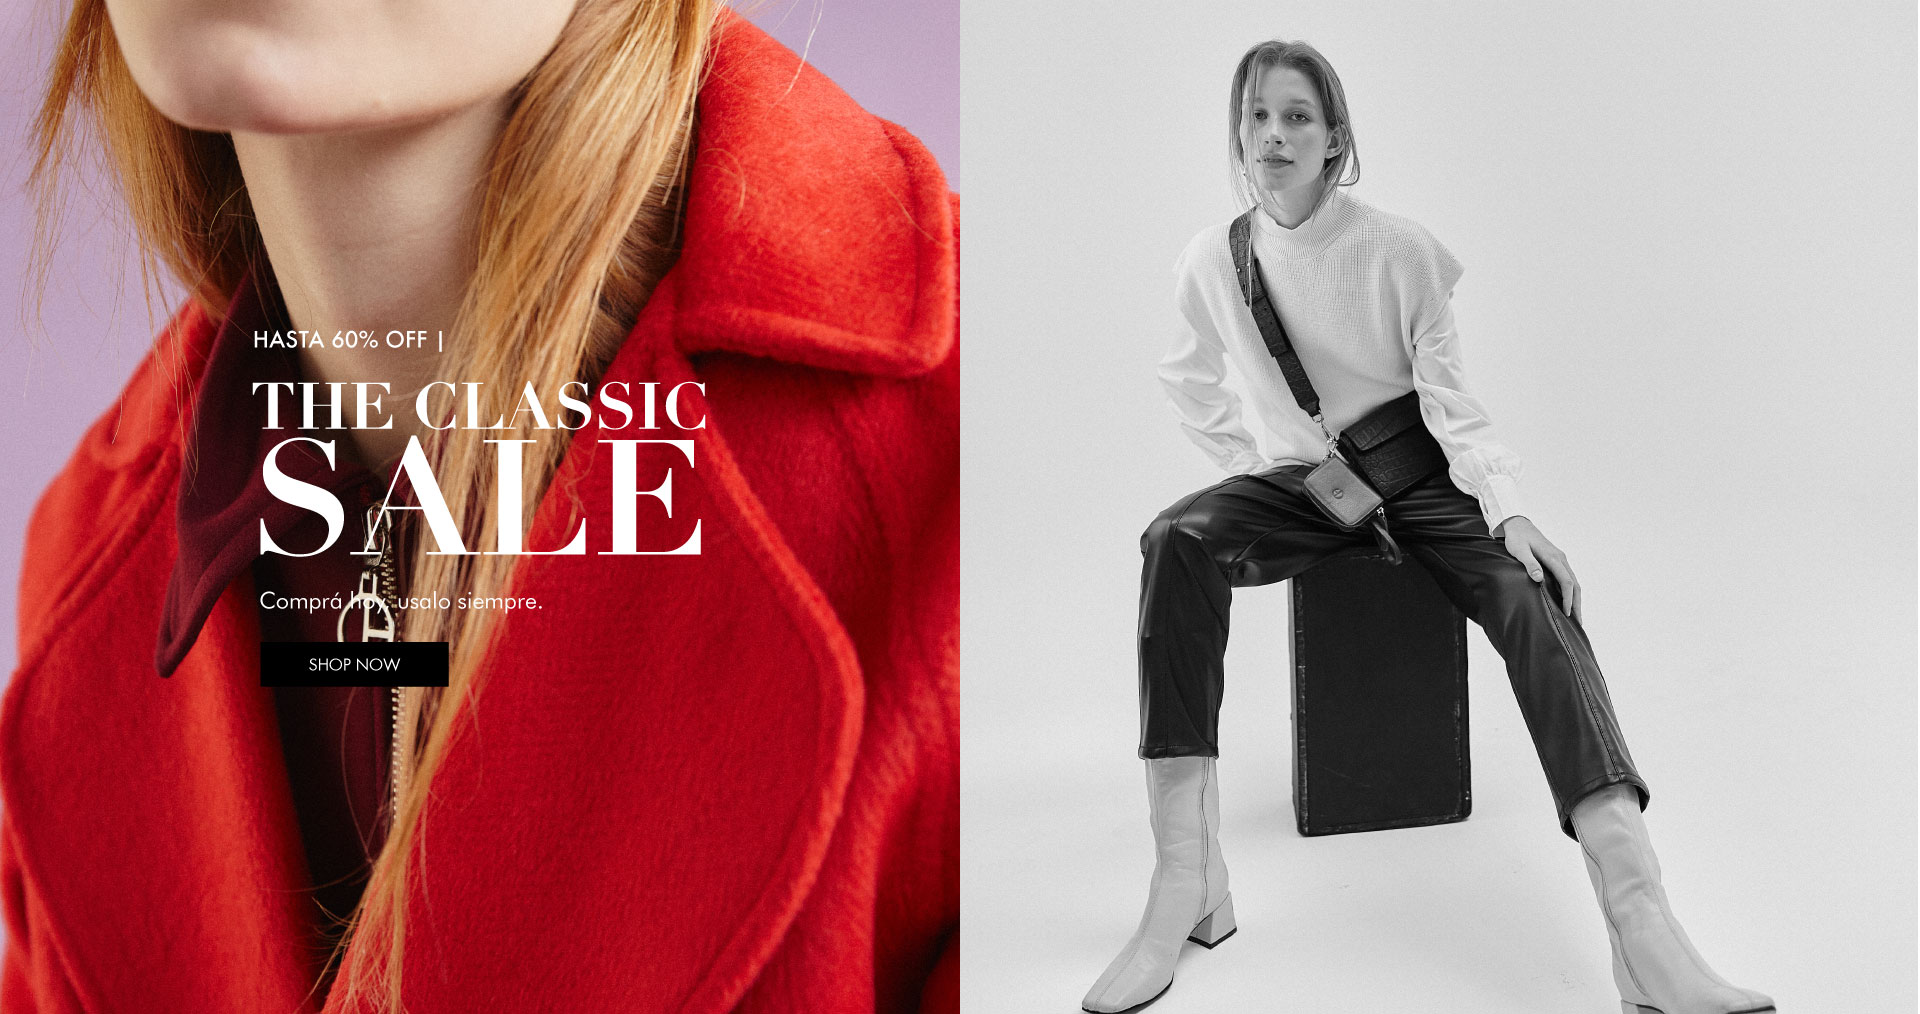 THE CLASSIC SALE